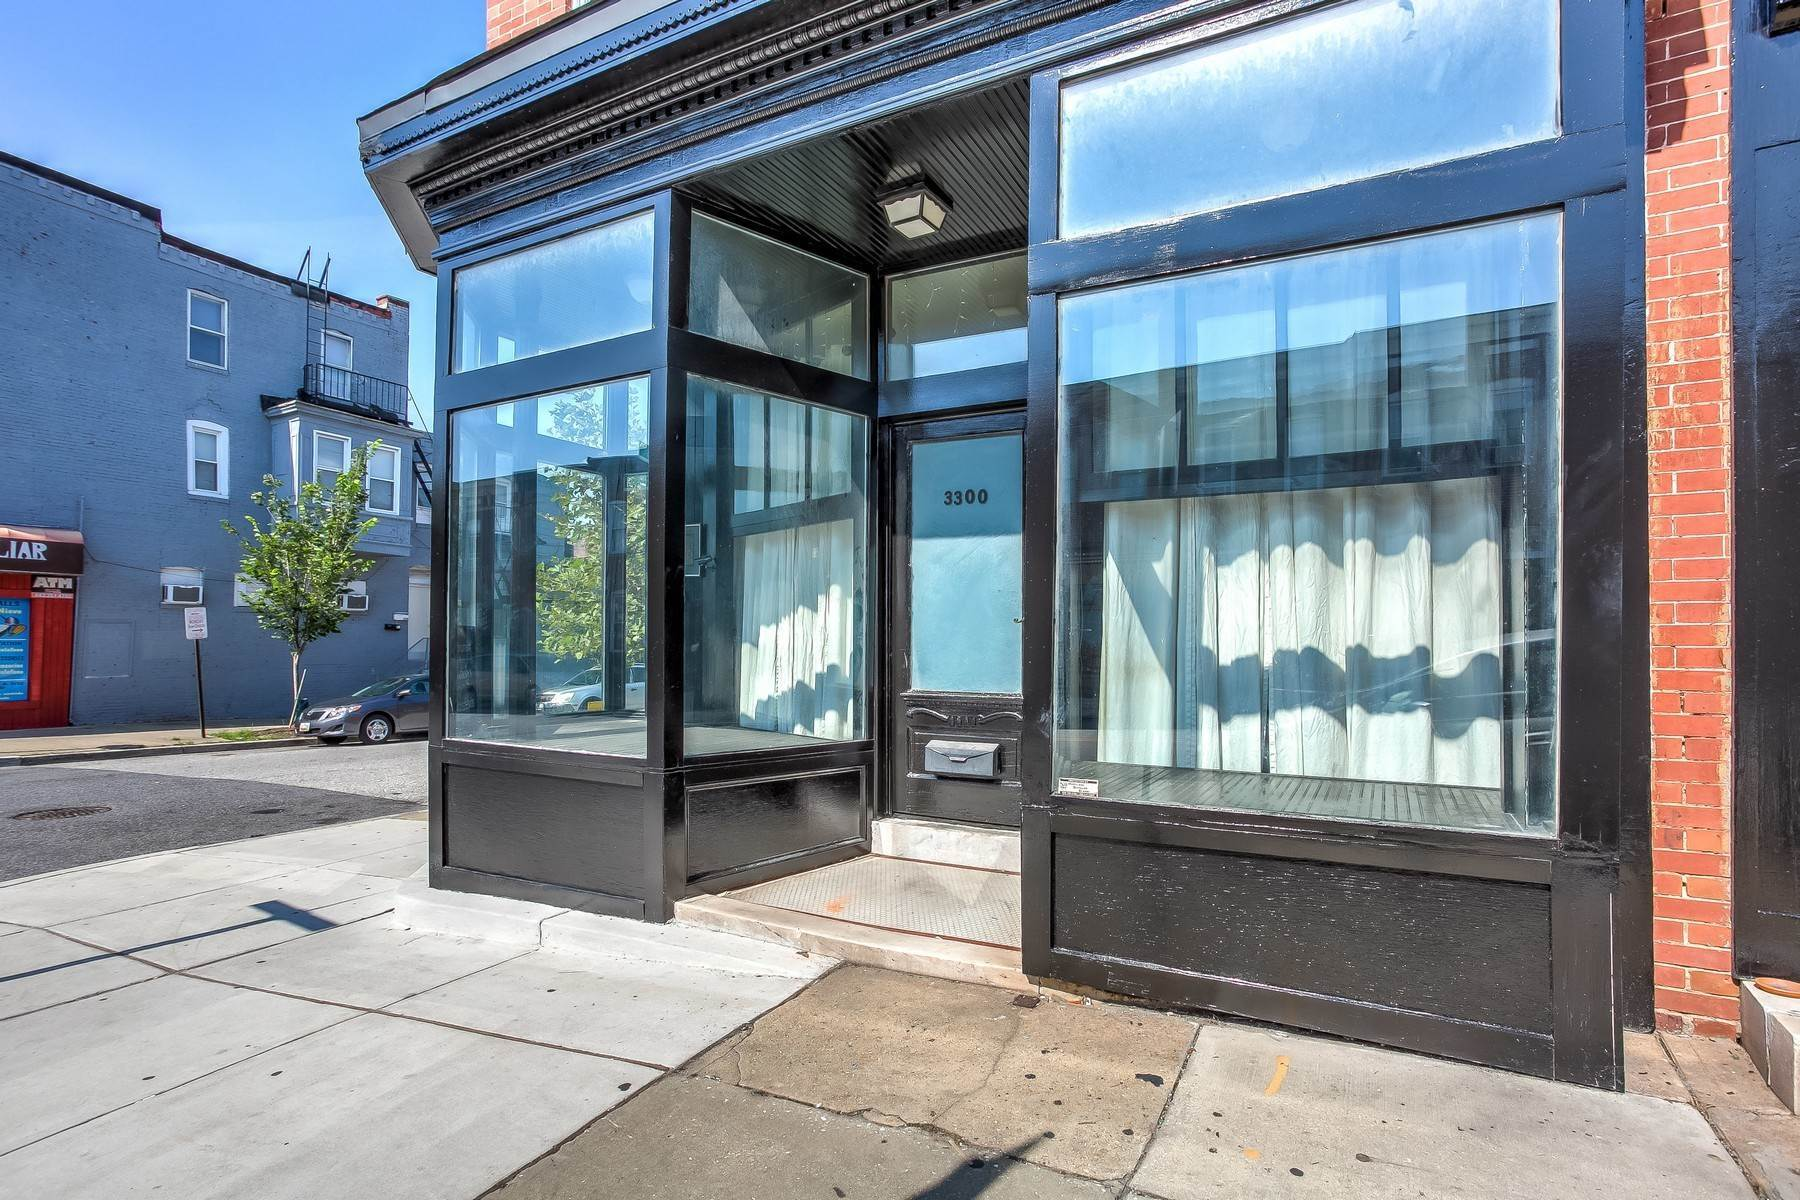 Multi-Family Homes for Sale at Prime Location and Income Producing 3302 East Baltimore Street Baltimore, Maryland 21224 United States